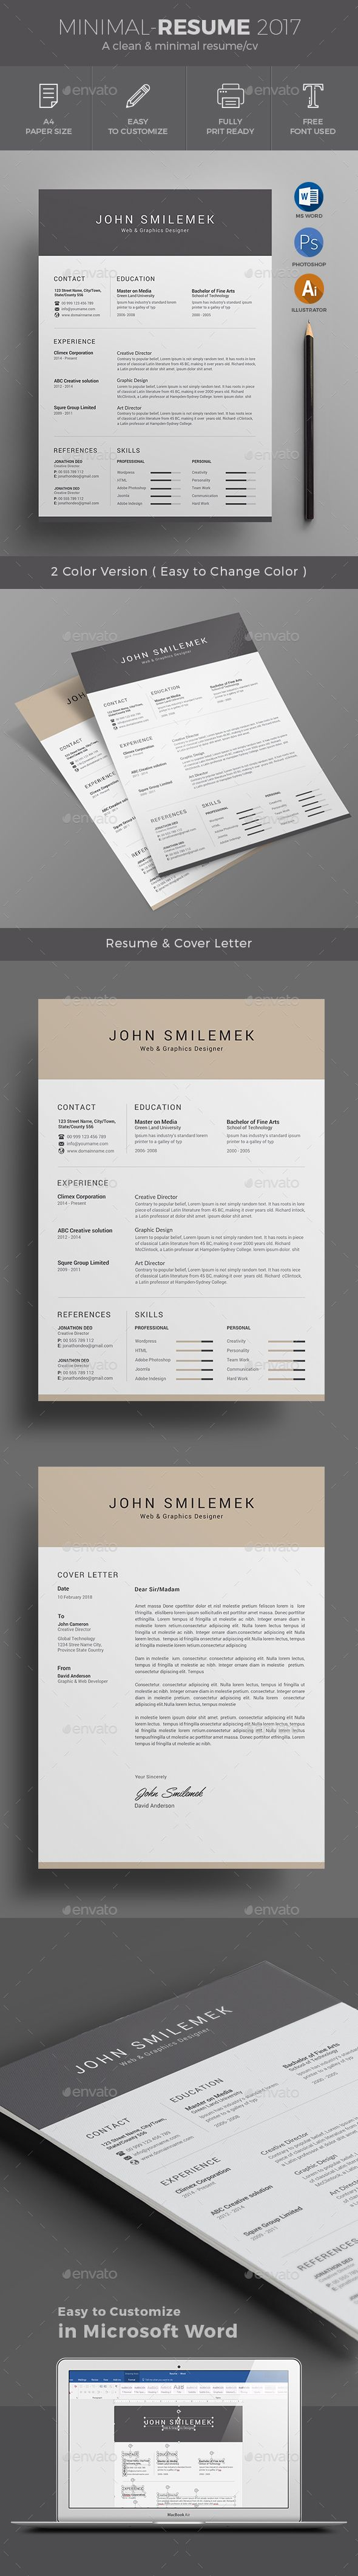 Cyber Security Resume Excel Resume  Cover Letter  Professional Resume Design Professional  Police Chief Resume Excel with Human Resources Manager Resume Word Resume How To Add Education To Resume